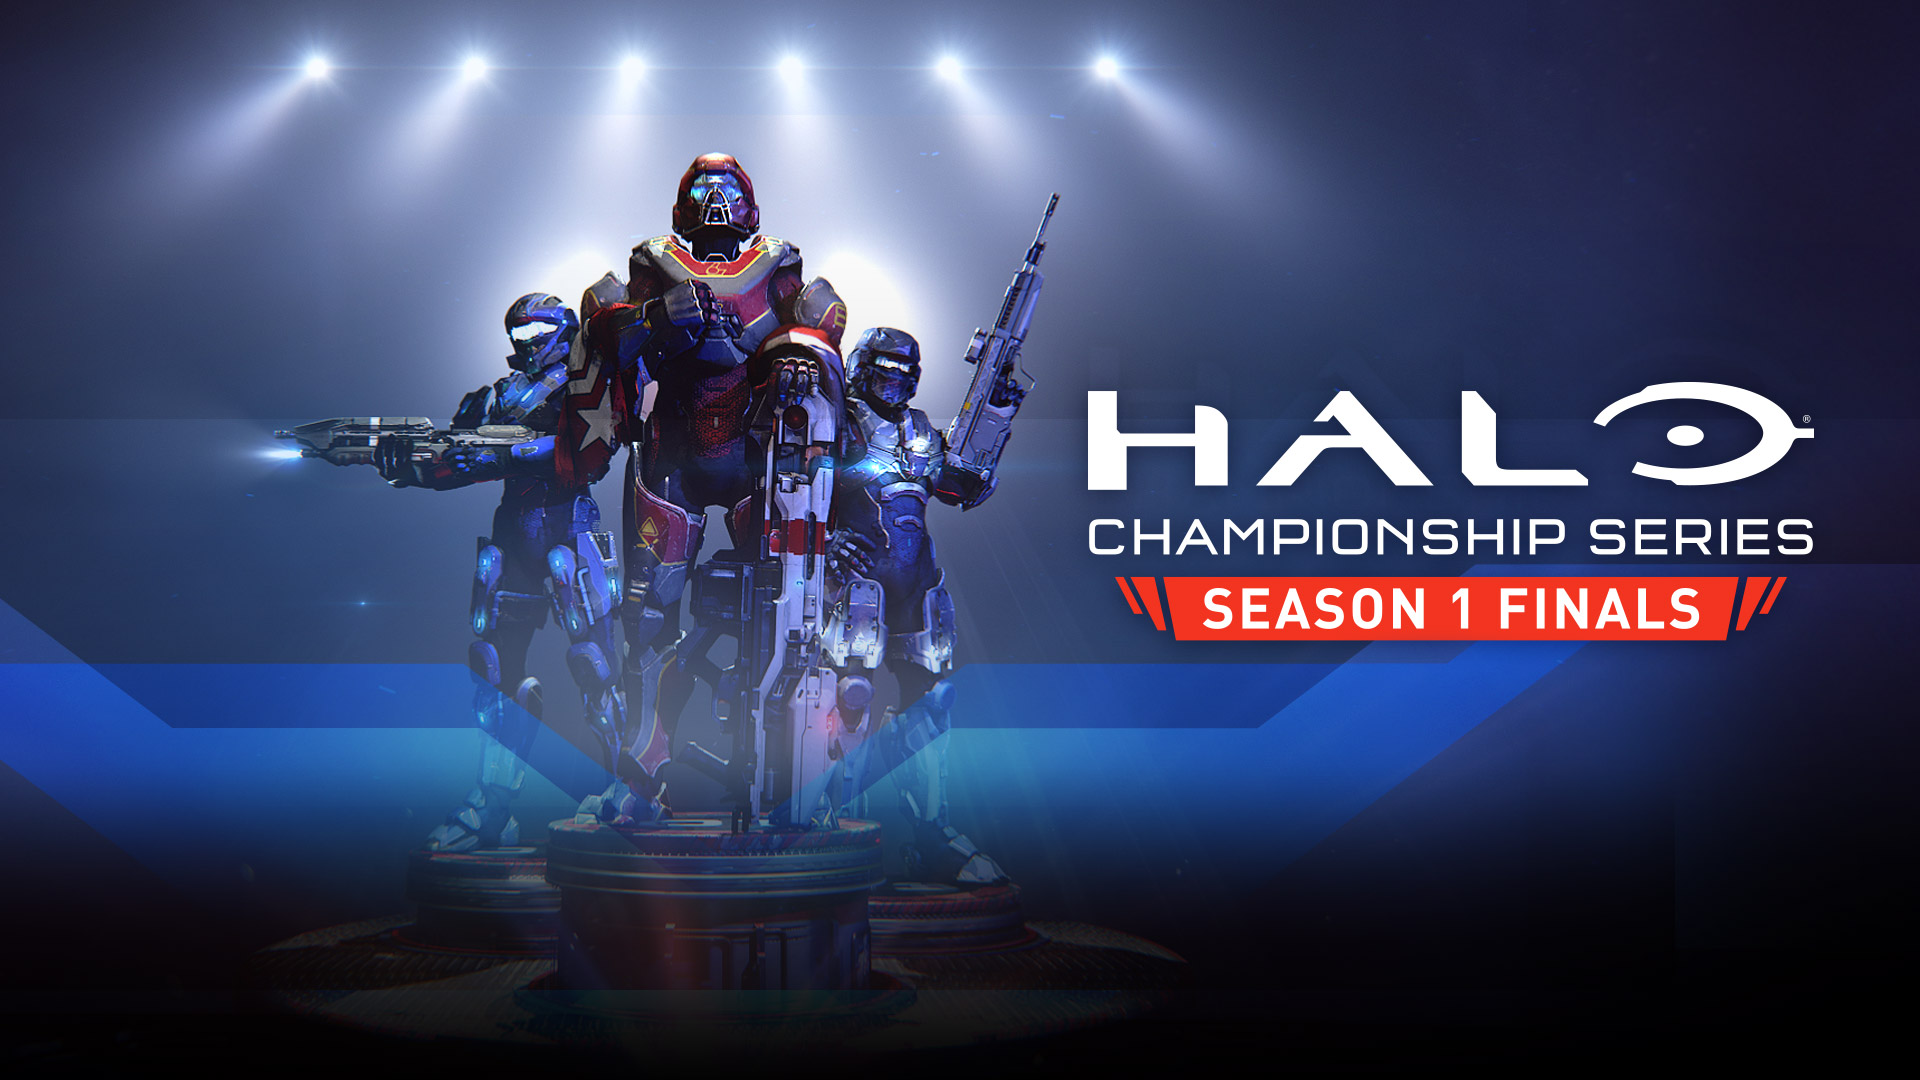 season 1 finals wallpapers social kit halo championship series